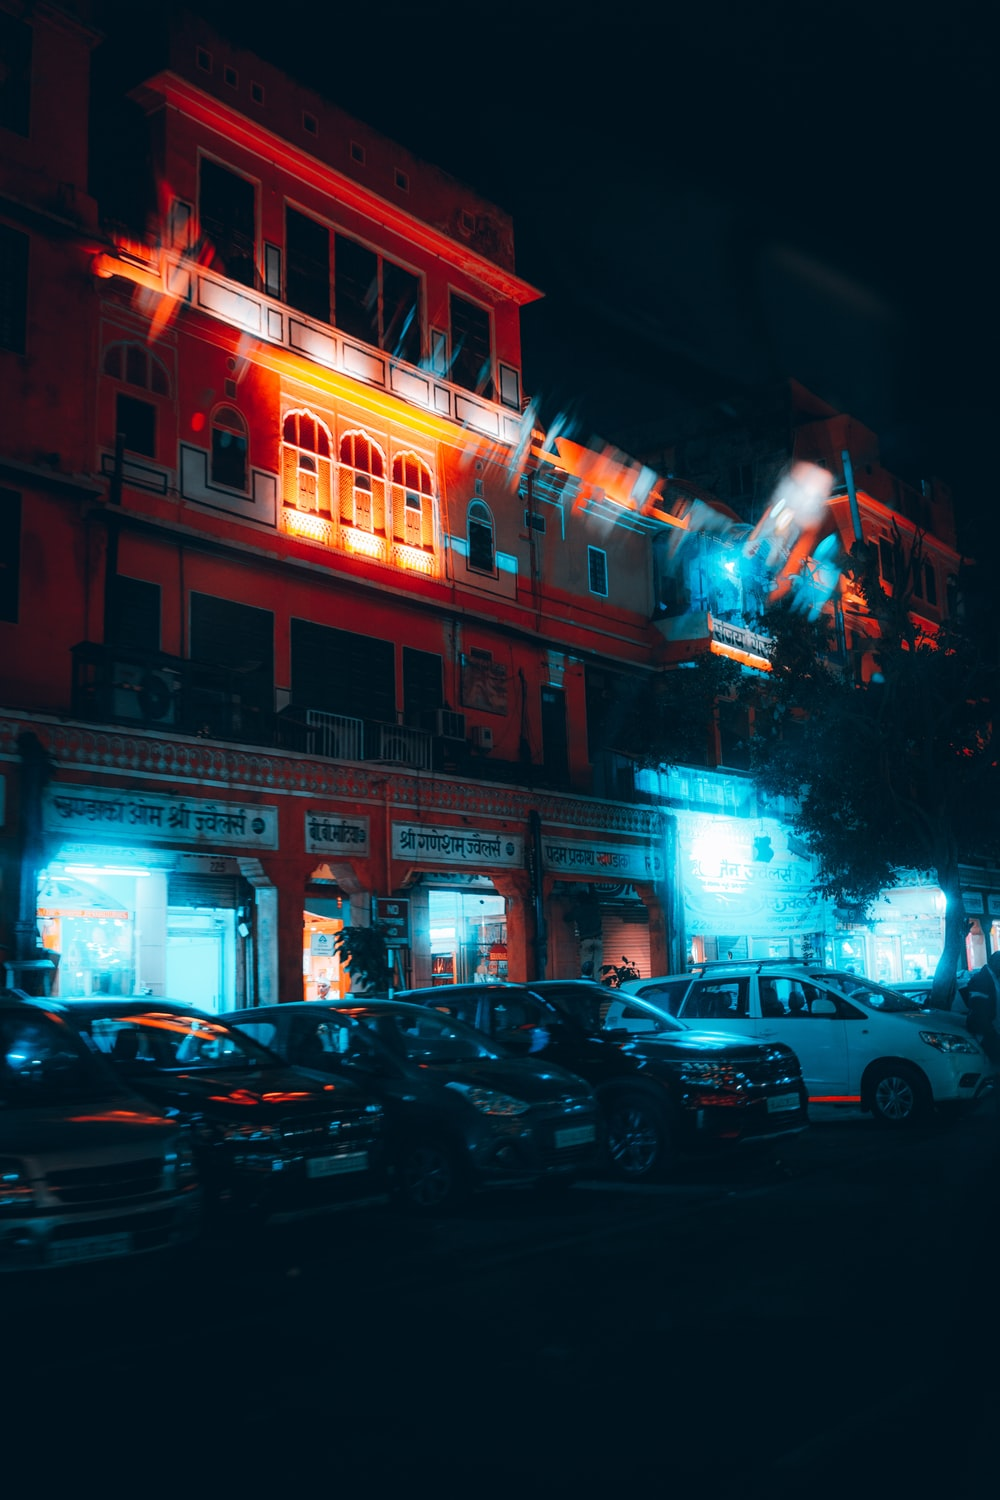 cars parked in front of red building during night time